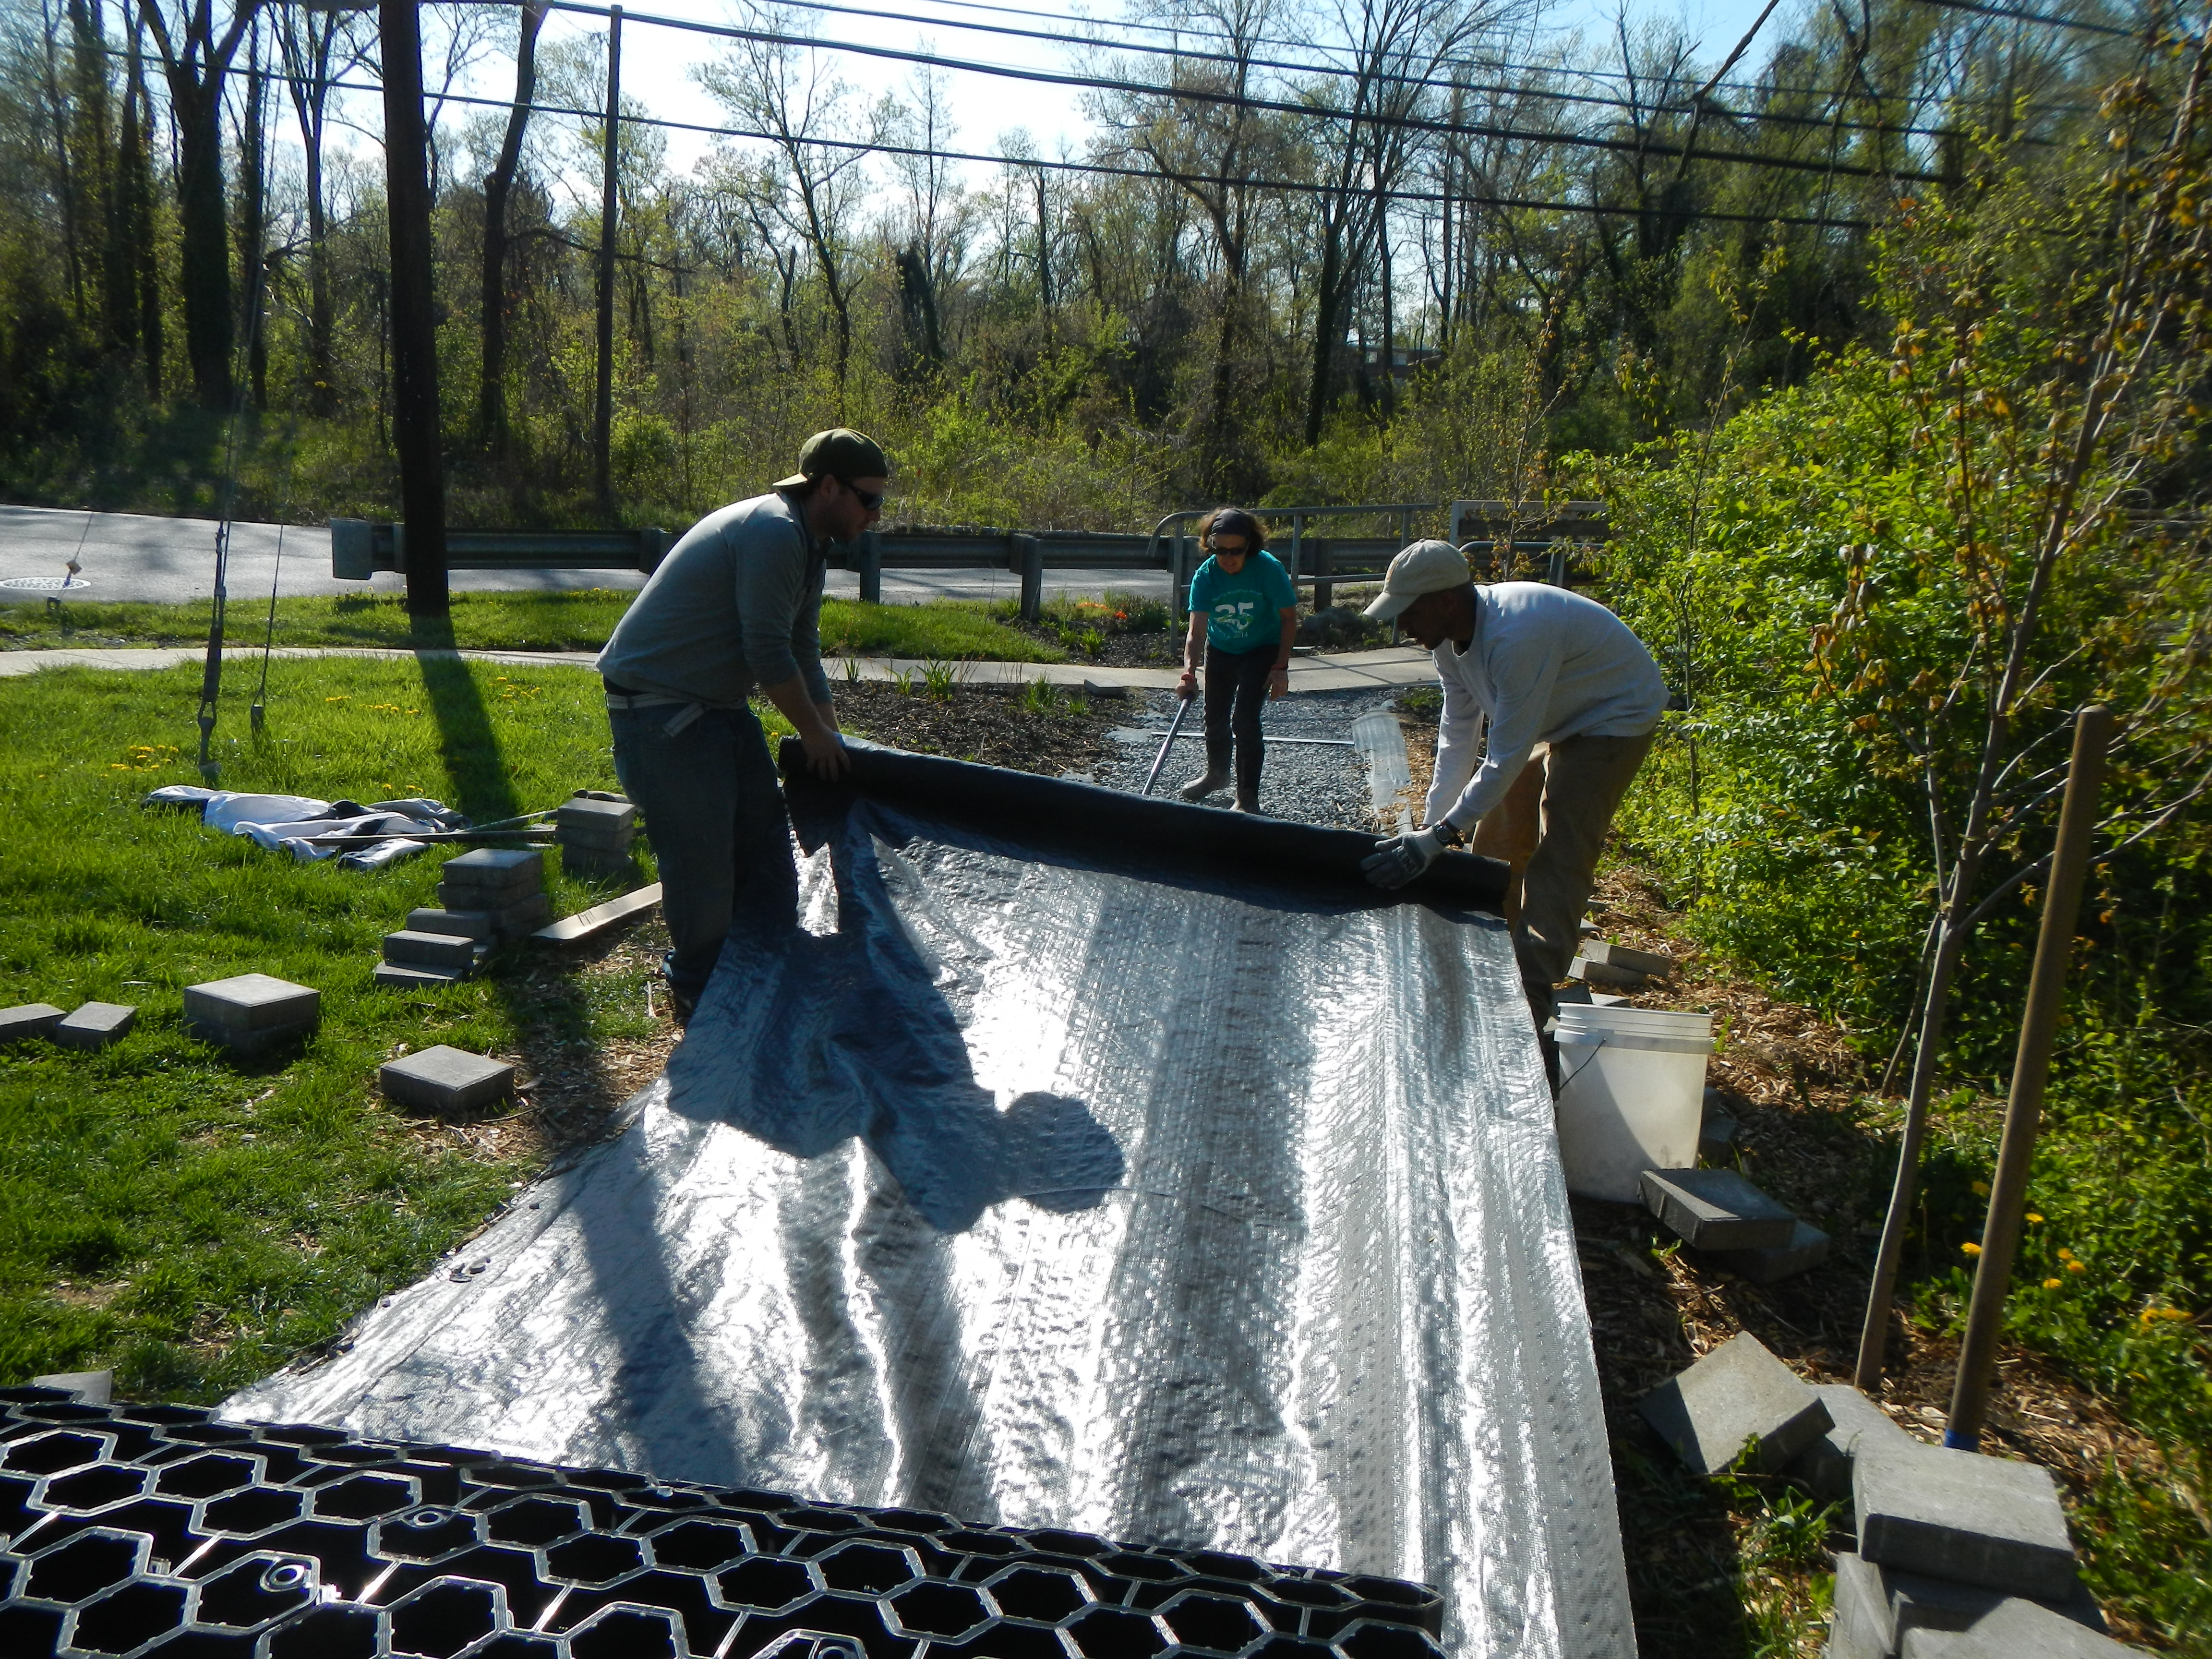 Installing the path